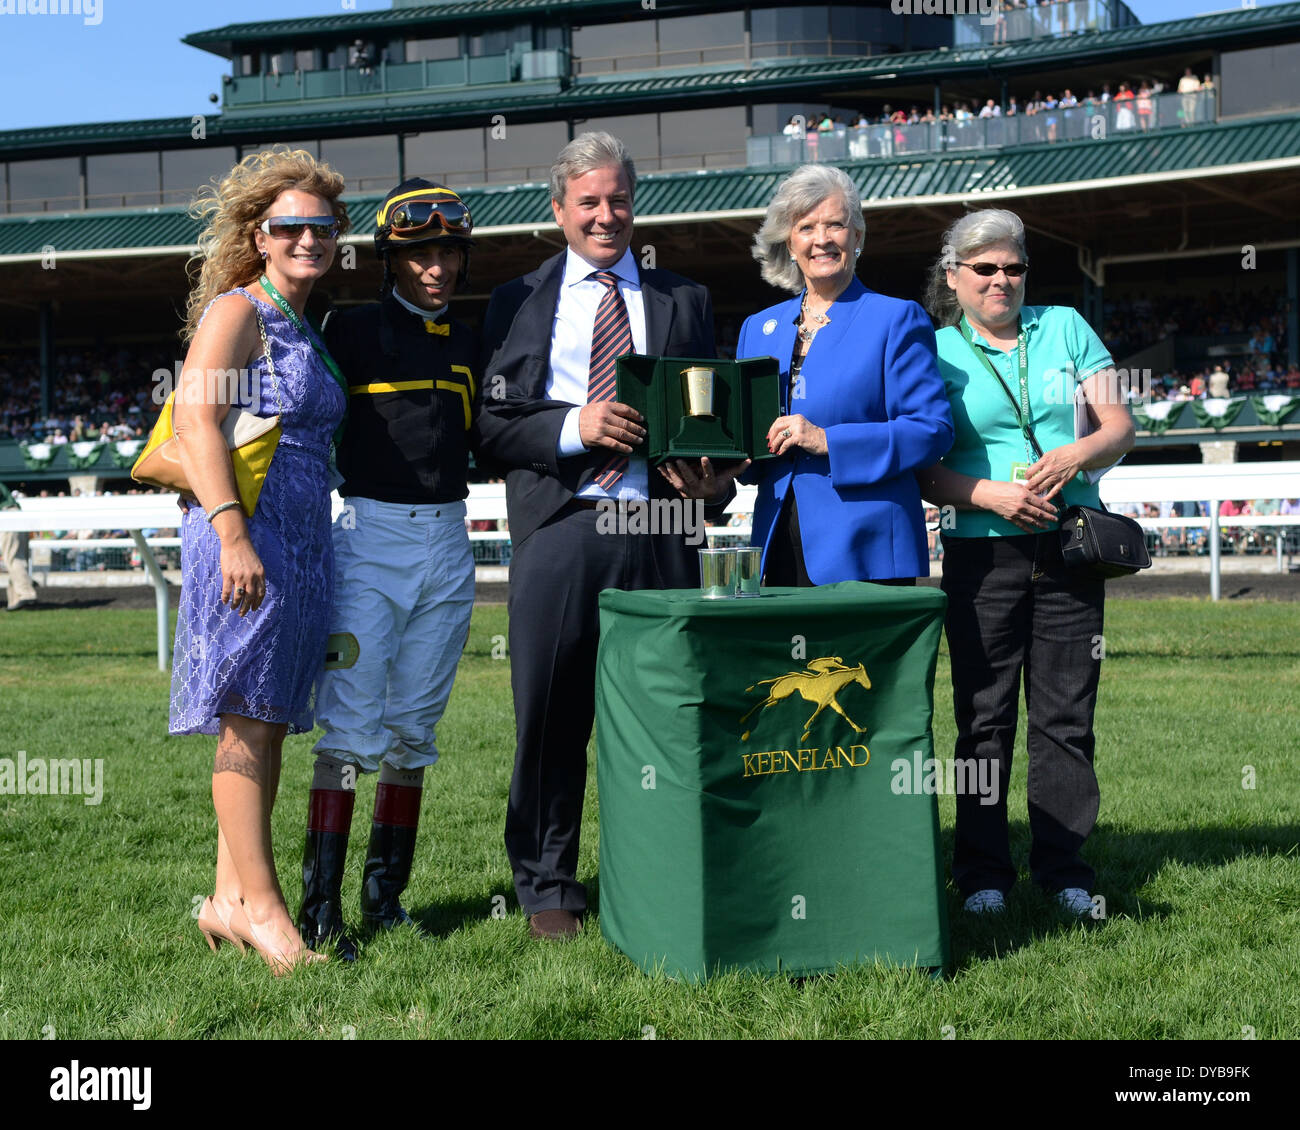 Lexington, KY, USA. 12th Apr, 2014. Aoril 12, 2014: Judy the Beauty and jockey John Velazquez win the G1 Madison Stock Photo